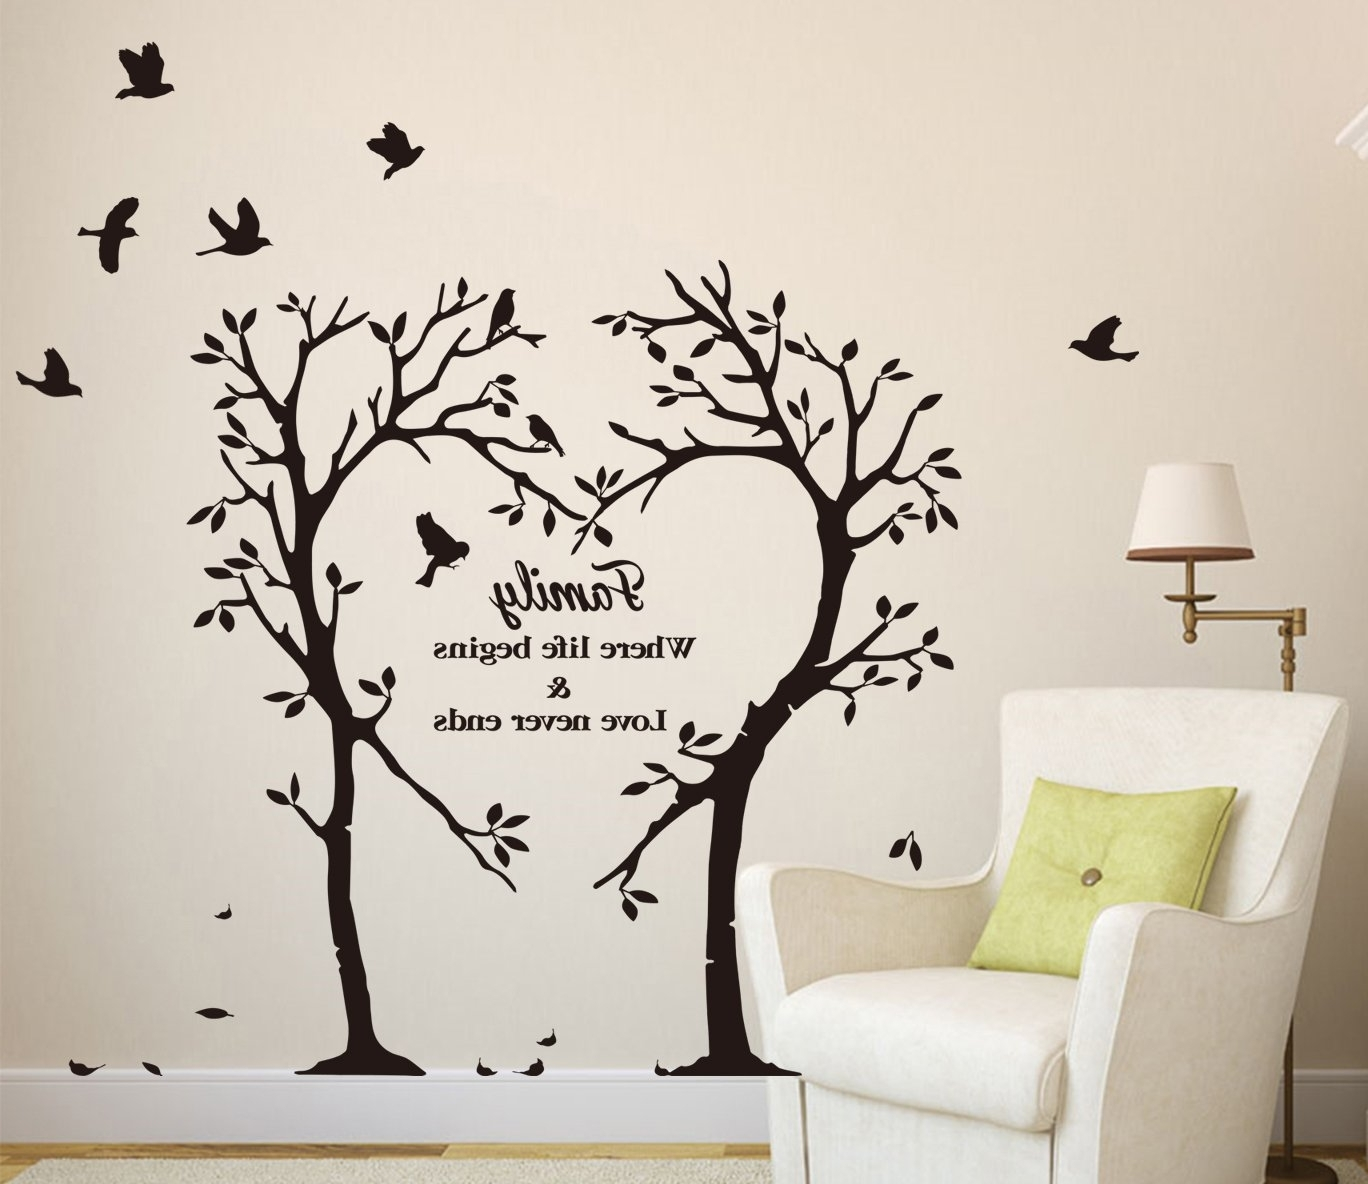 Large Family Inspirational Love Tree Wall Art Sticker, Wall Sticker In Current Tree Wall Art (Gallery 9 of 15)